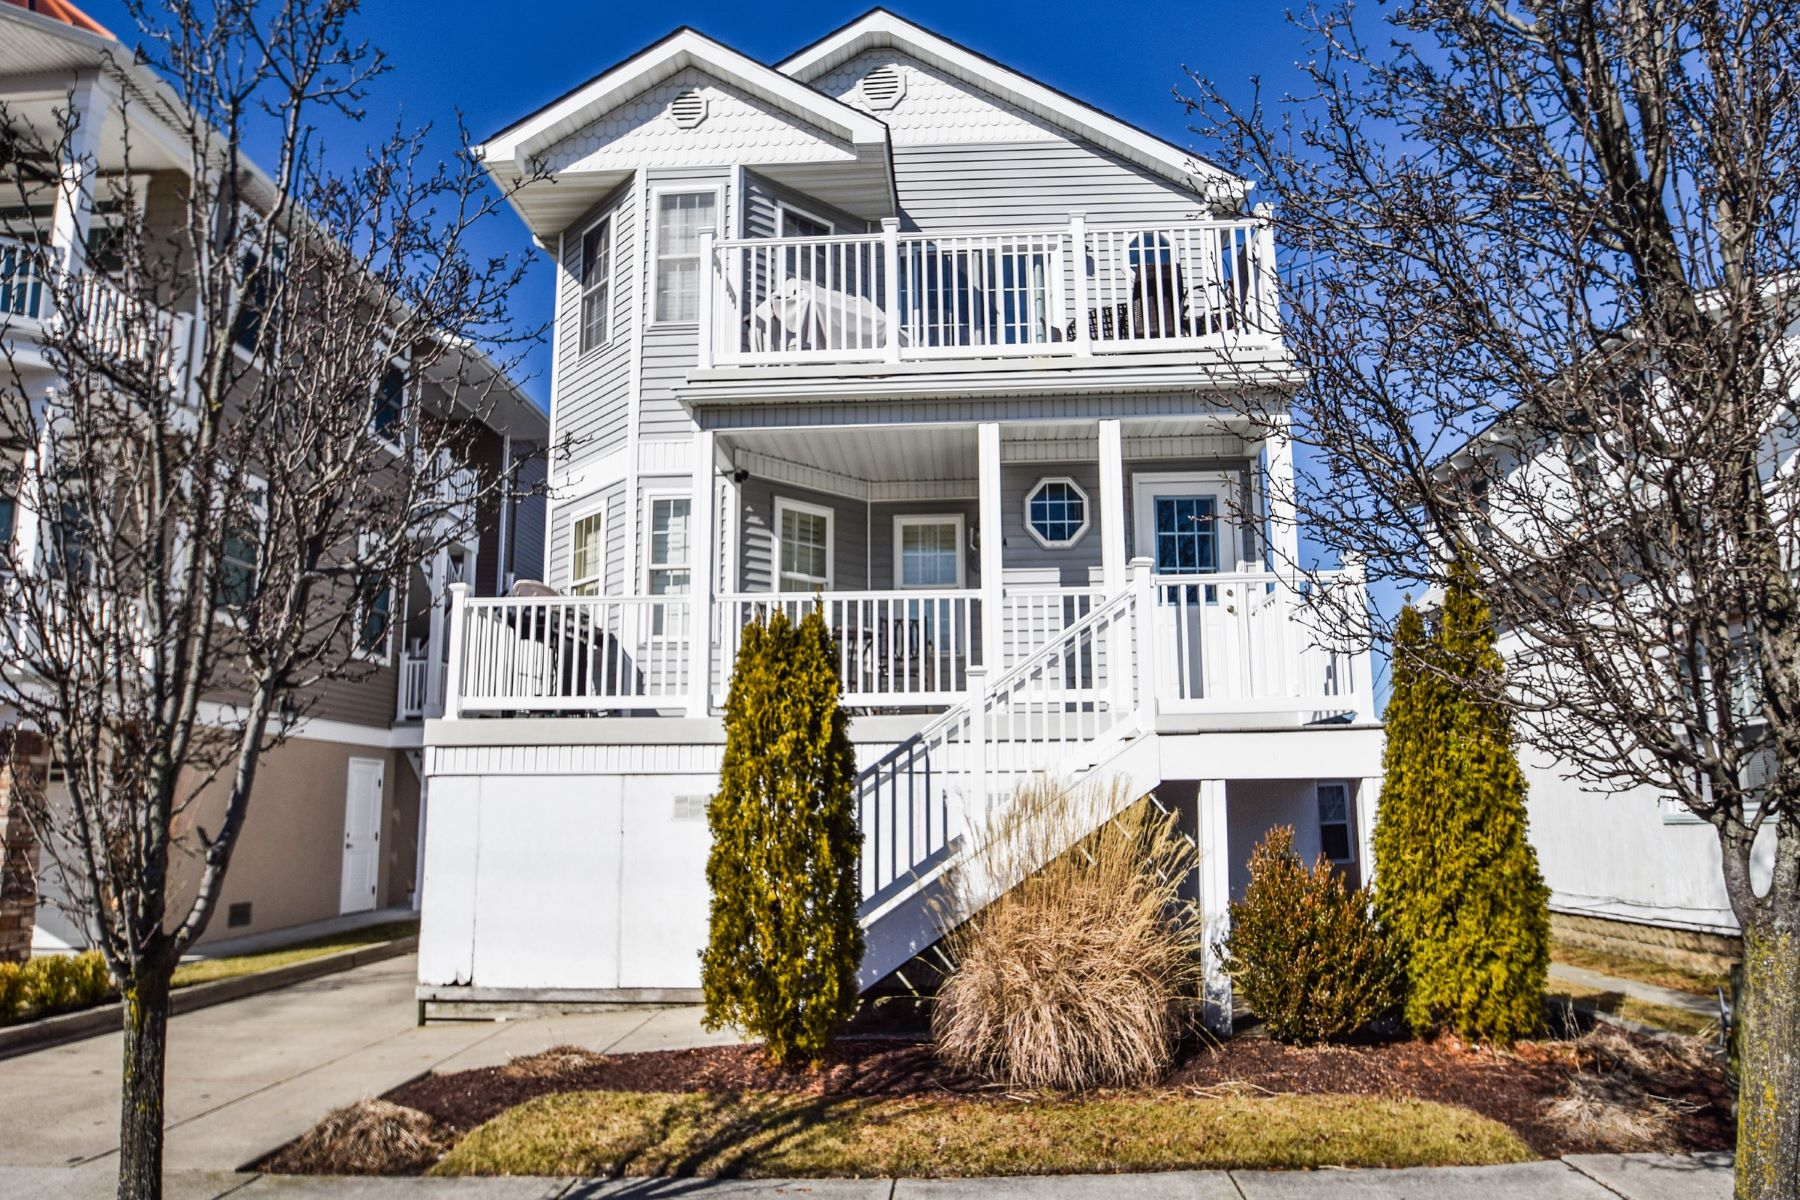 Condominium for Rent at 9311 Monmouth Ave 9311 Monmouth Ave Split Season 1st Half, Margate, New Jersey 08402 United States